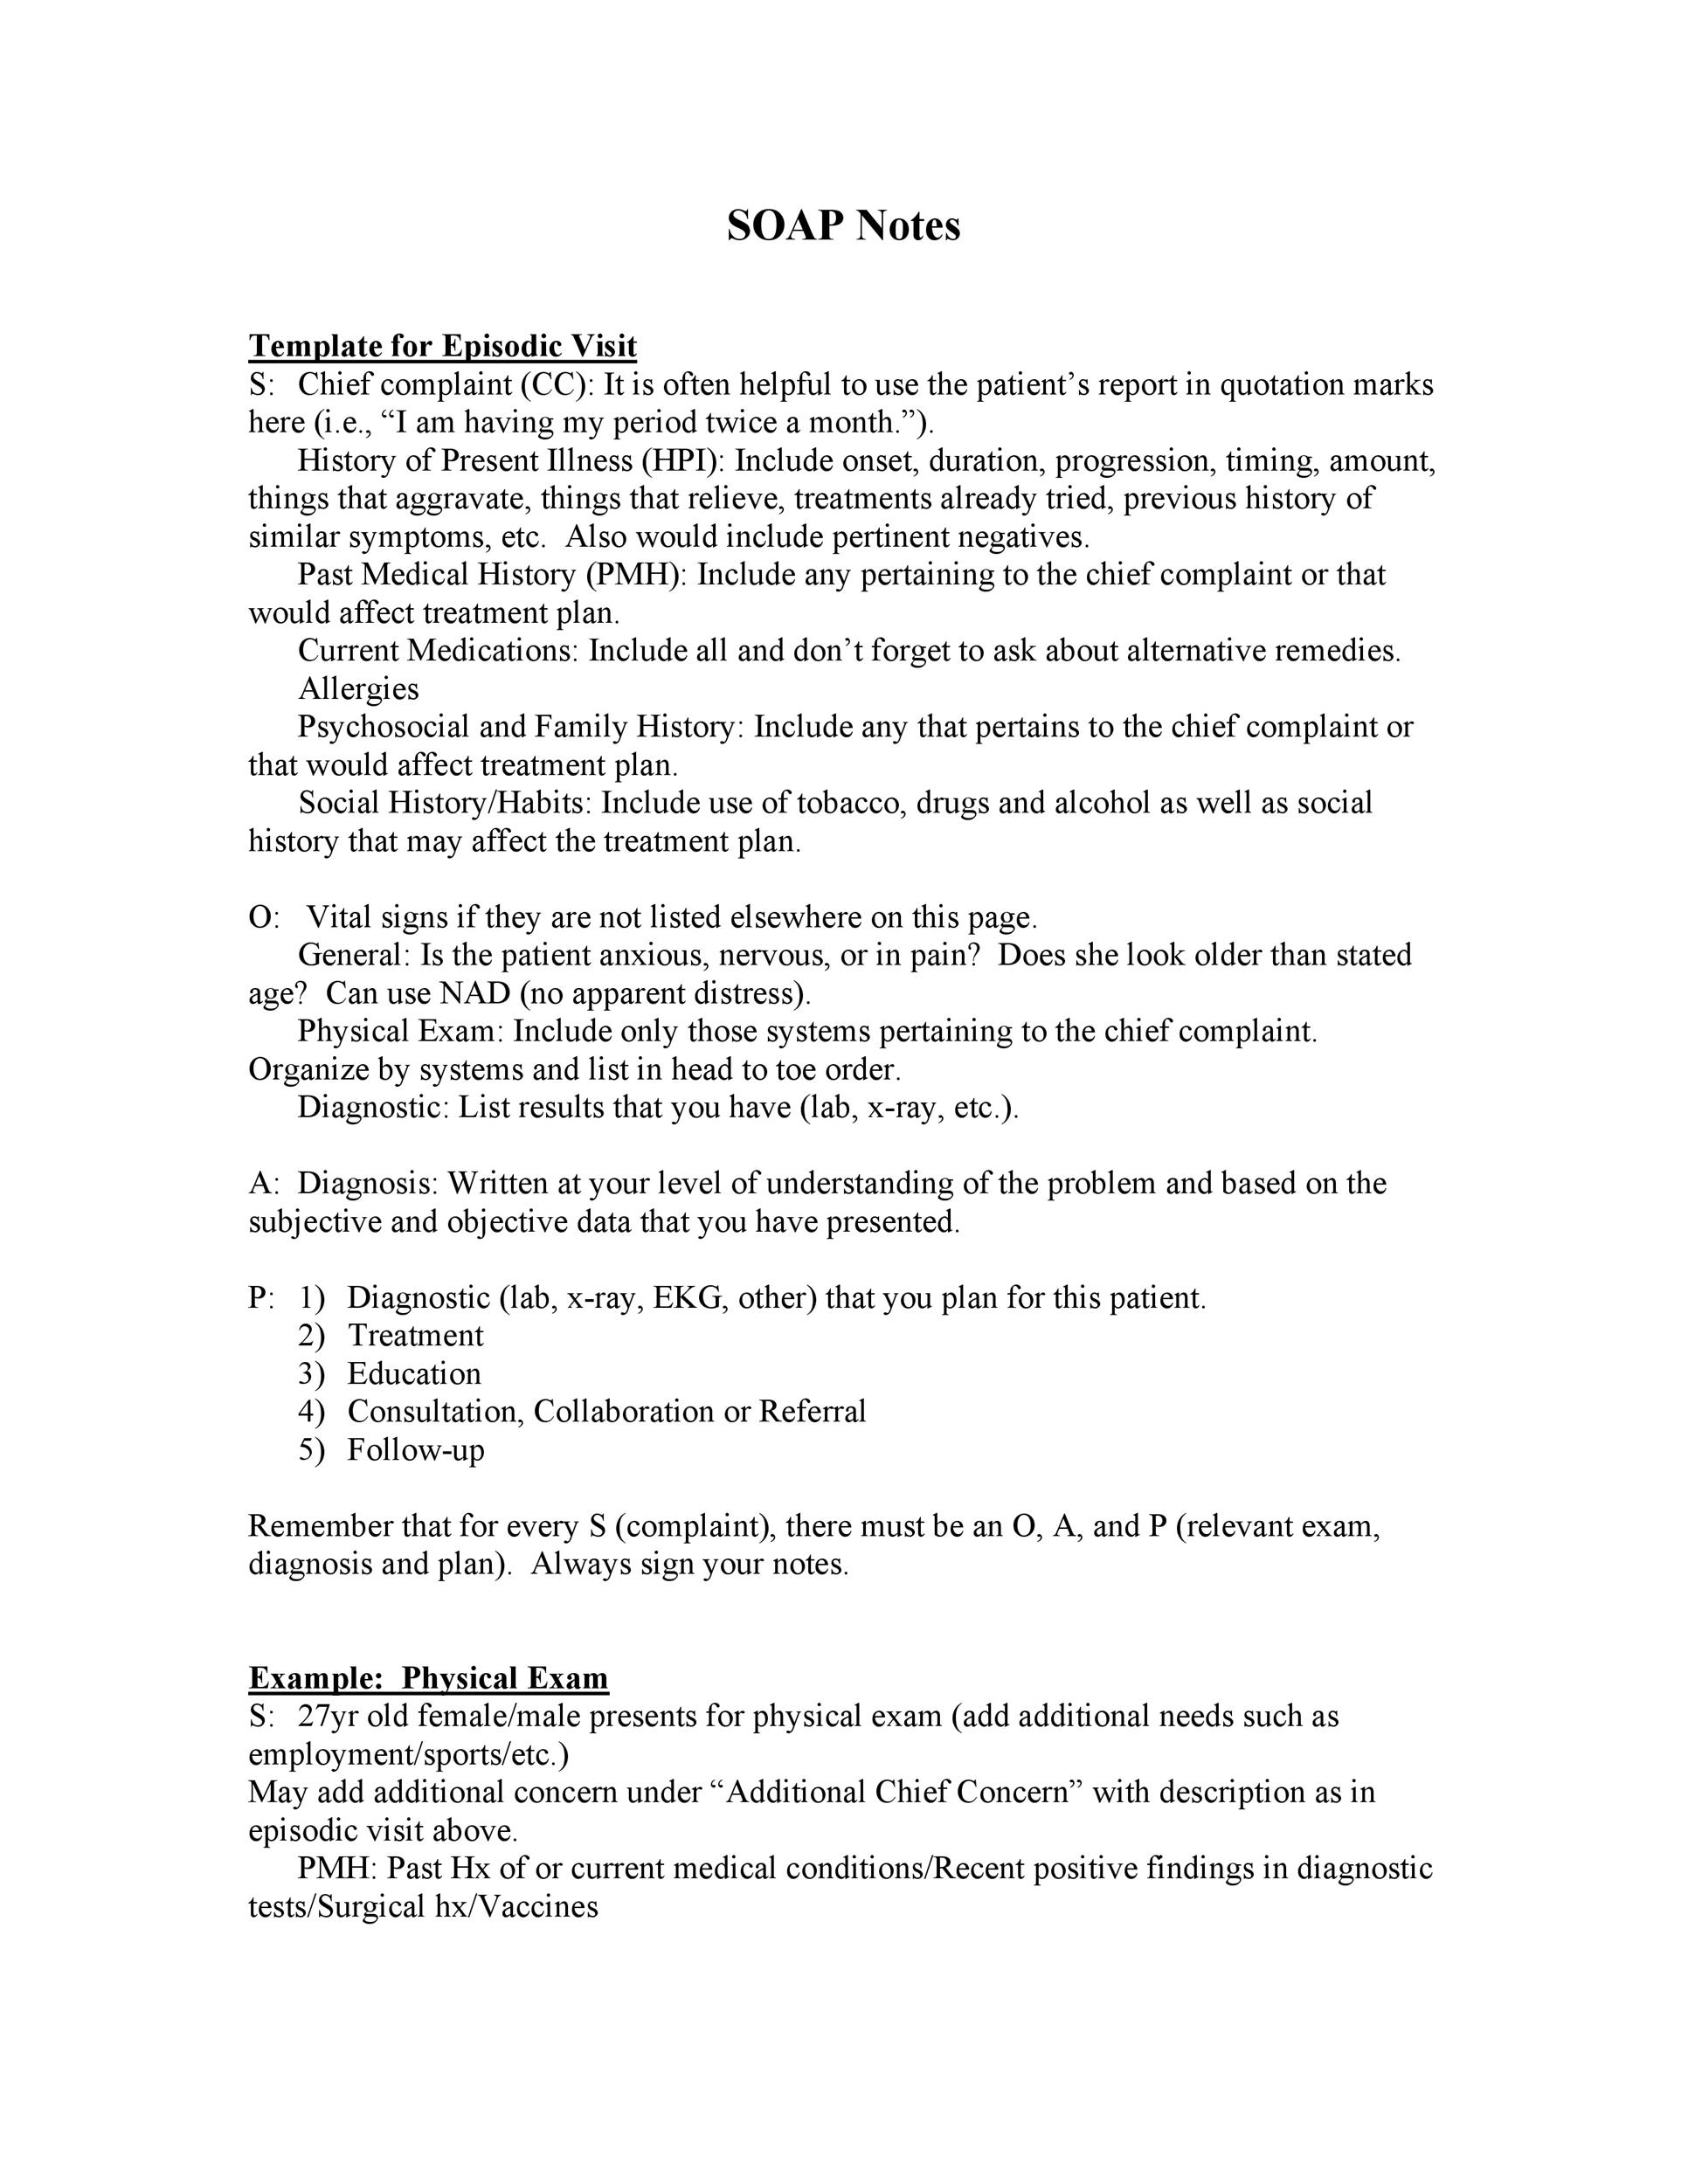 Free Soap Note Template 26